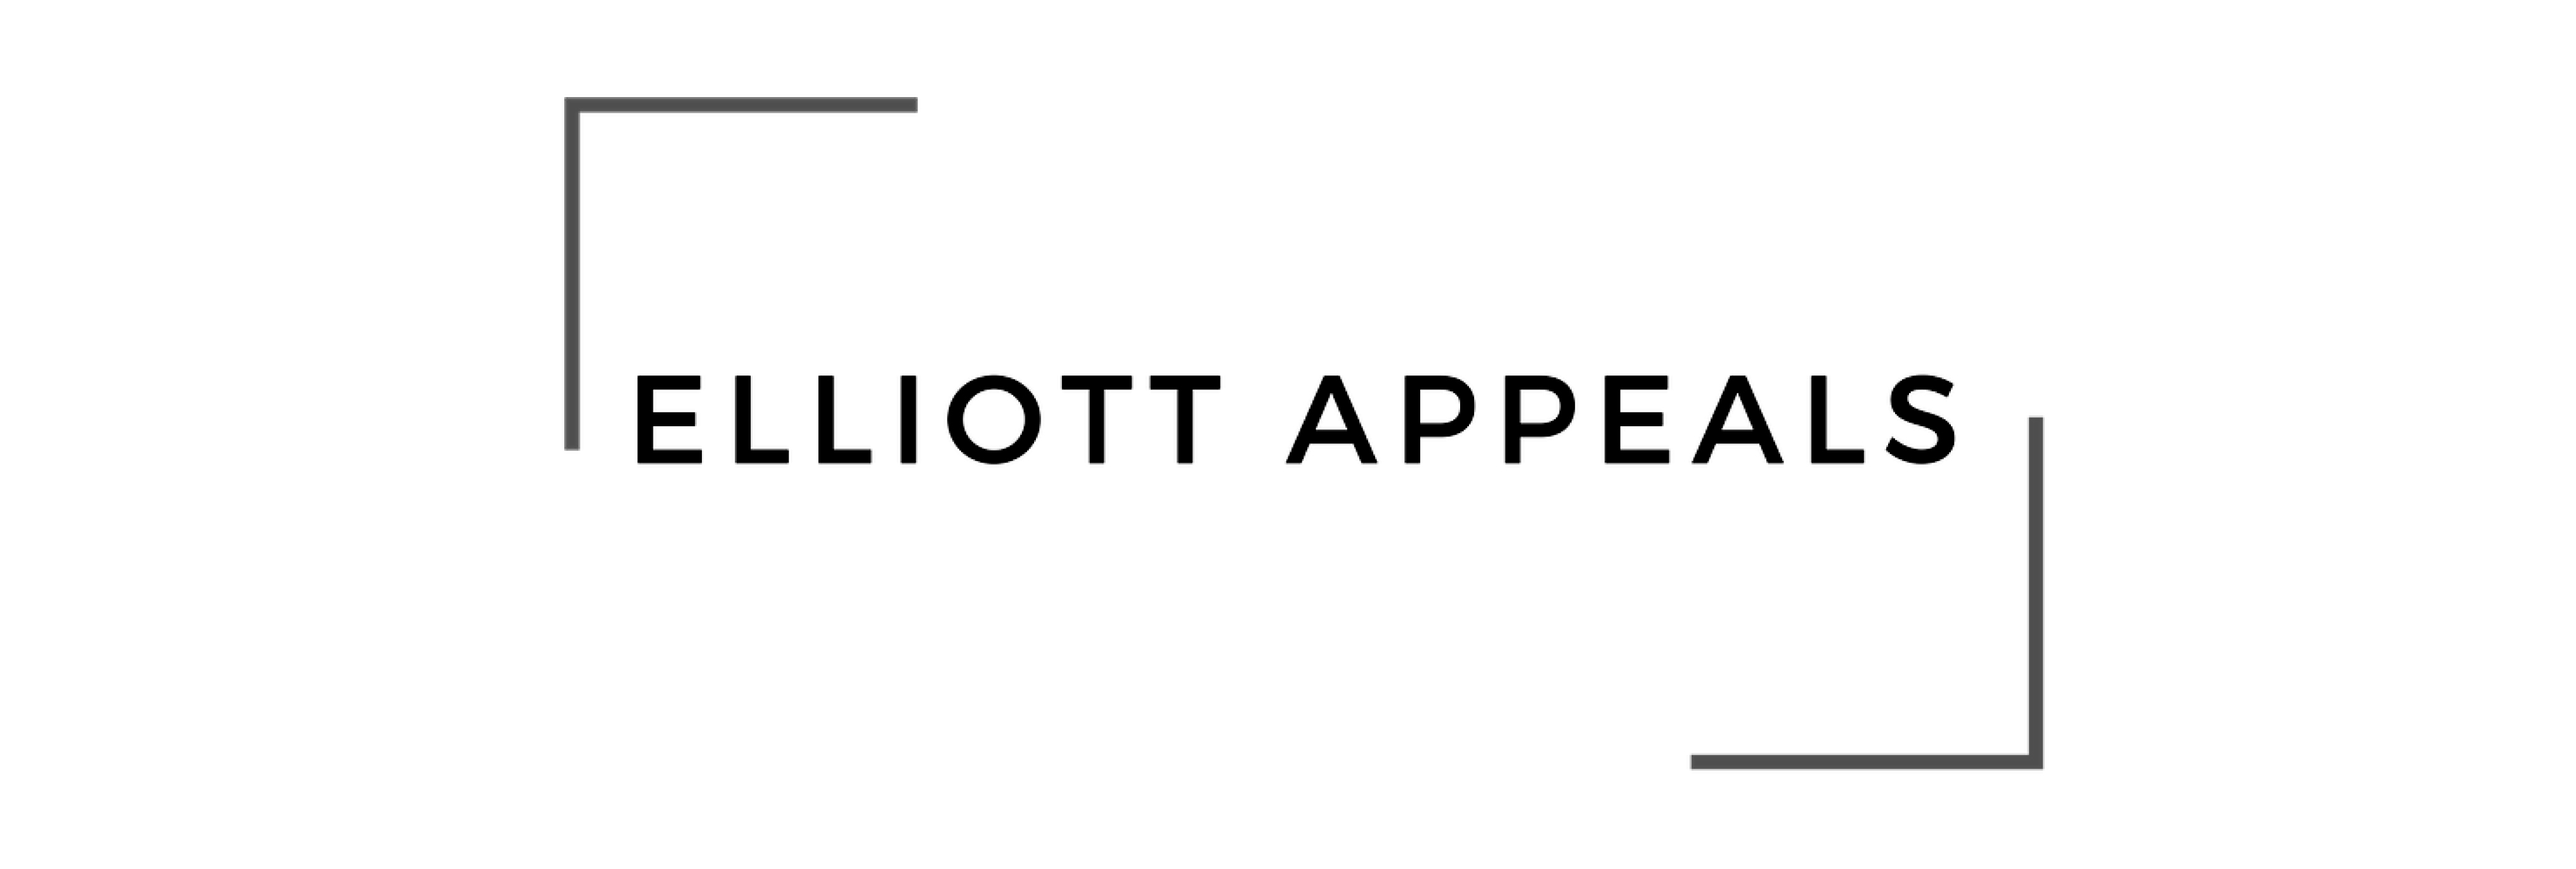 Elliott Appeals | Odd Poppy Advertising Agency | Johannesburg | Clients